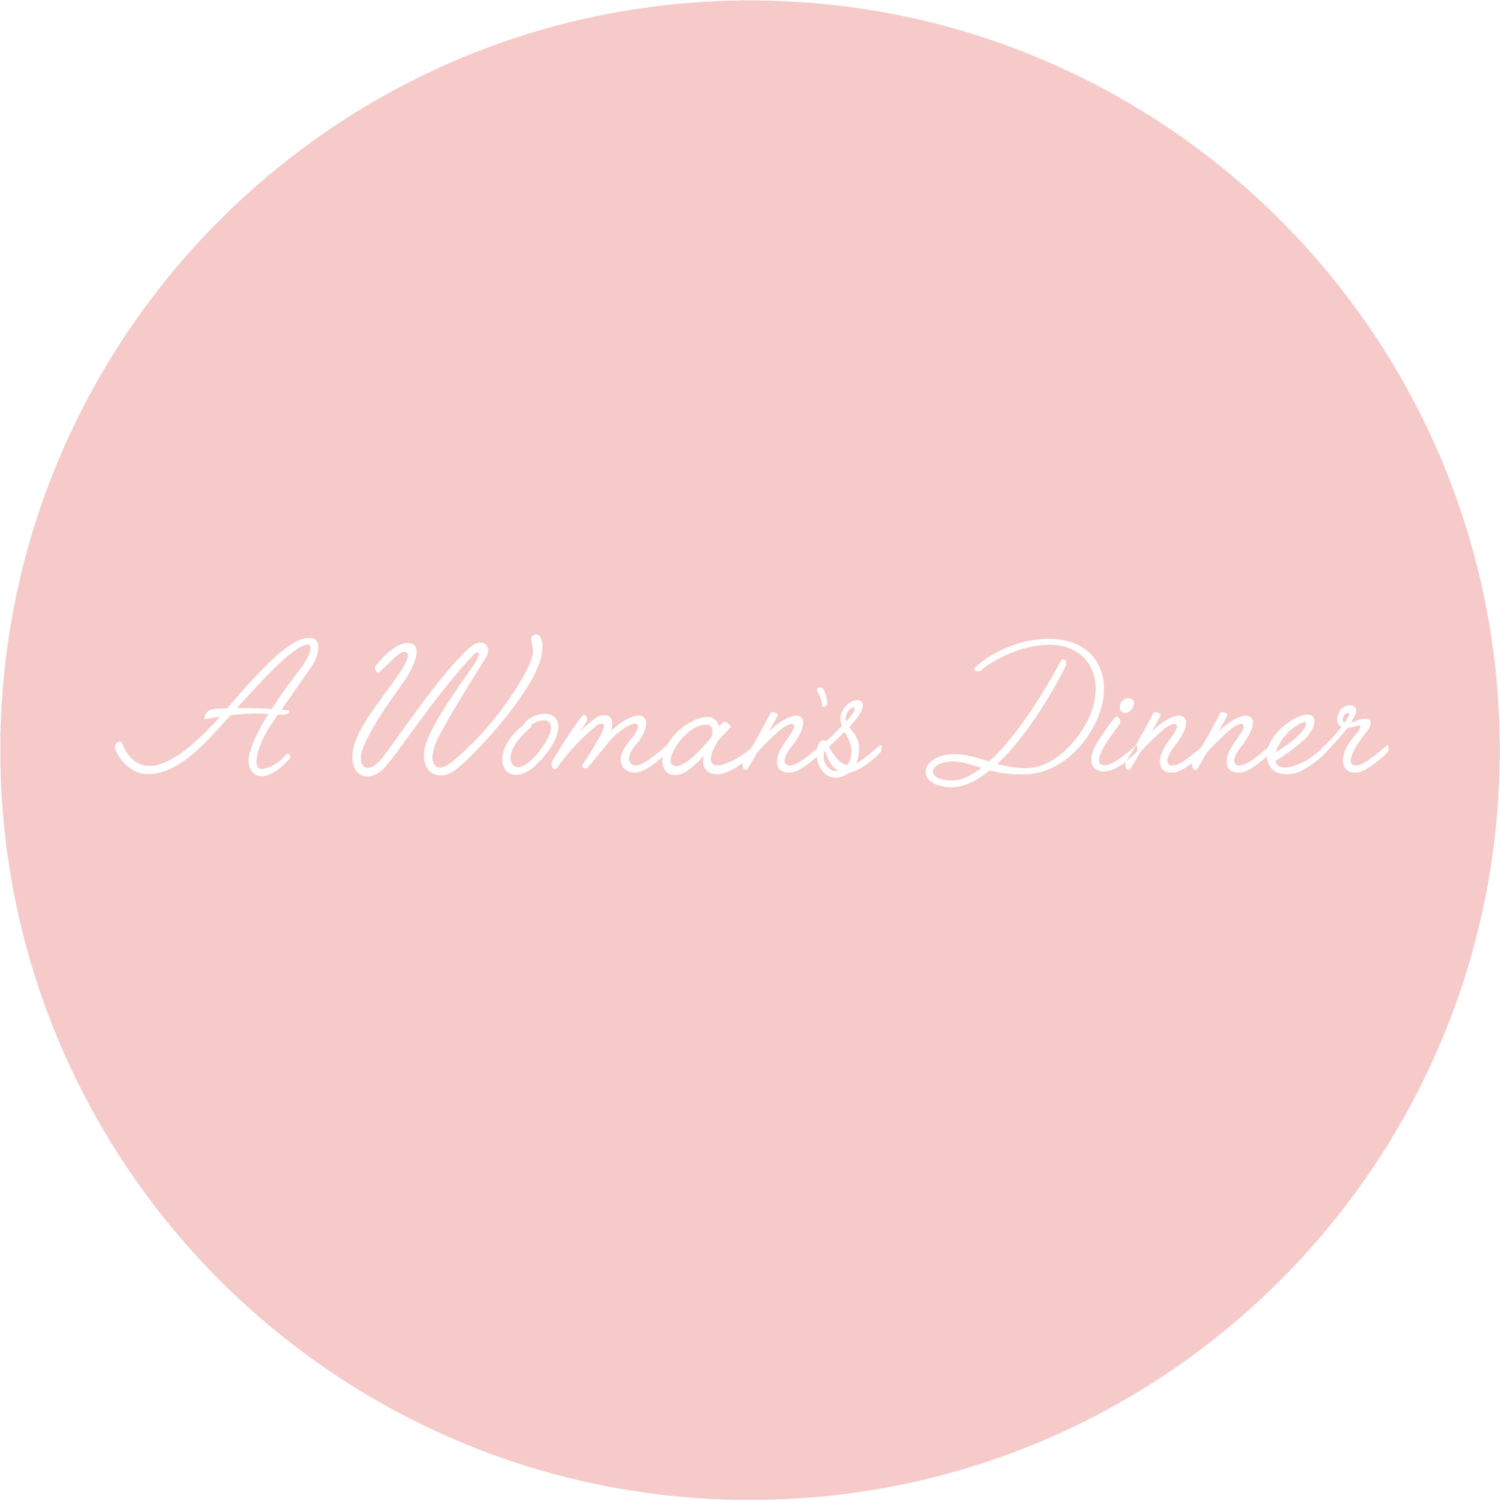 Woman's+Dinner+Circle.png